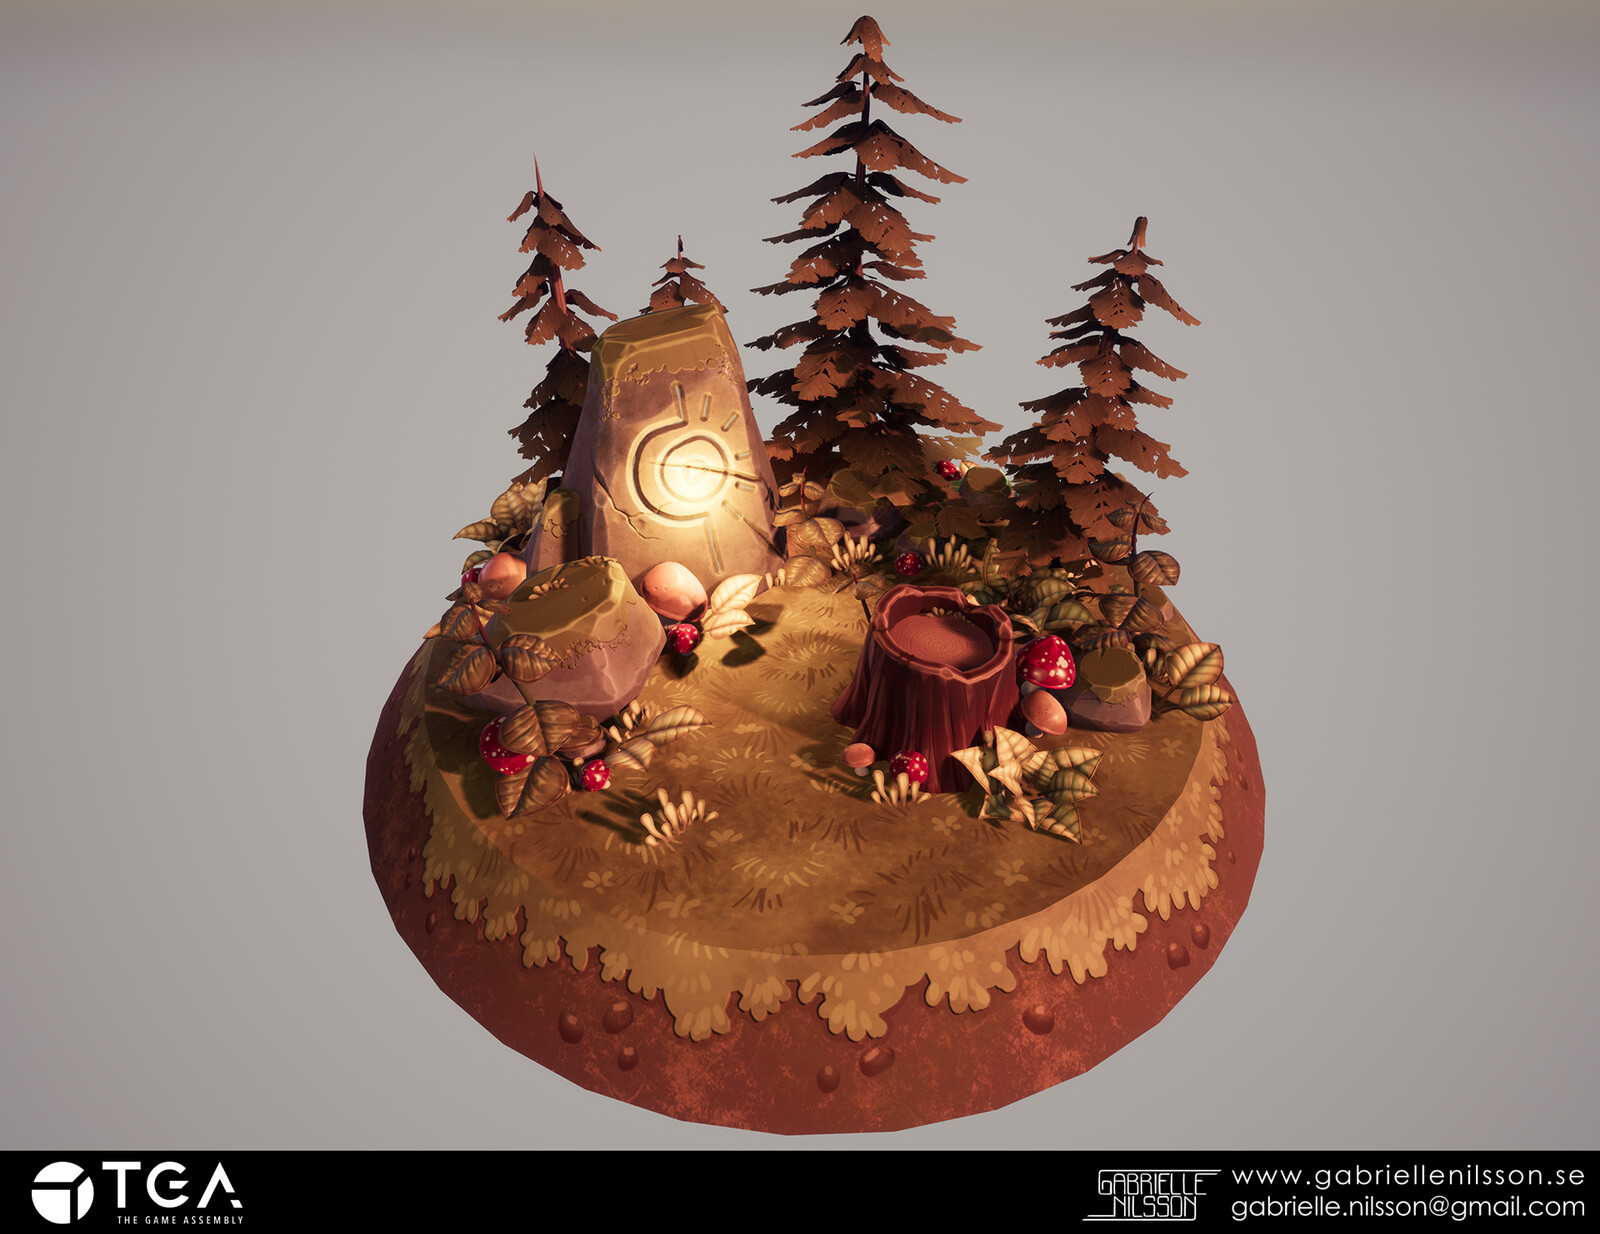 Stylized diorama environment. Here I wanted to create a warm and cozy mood, and also experiment a bit with foliage.